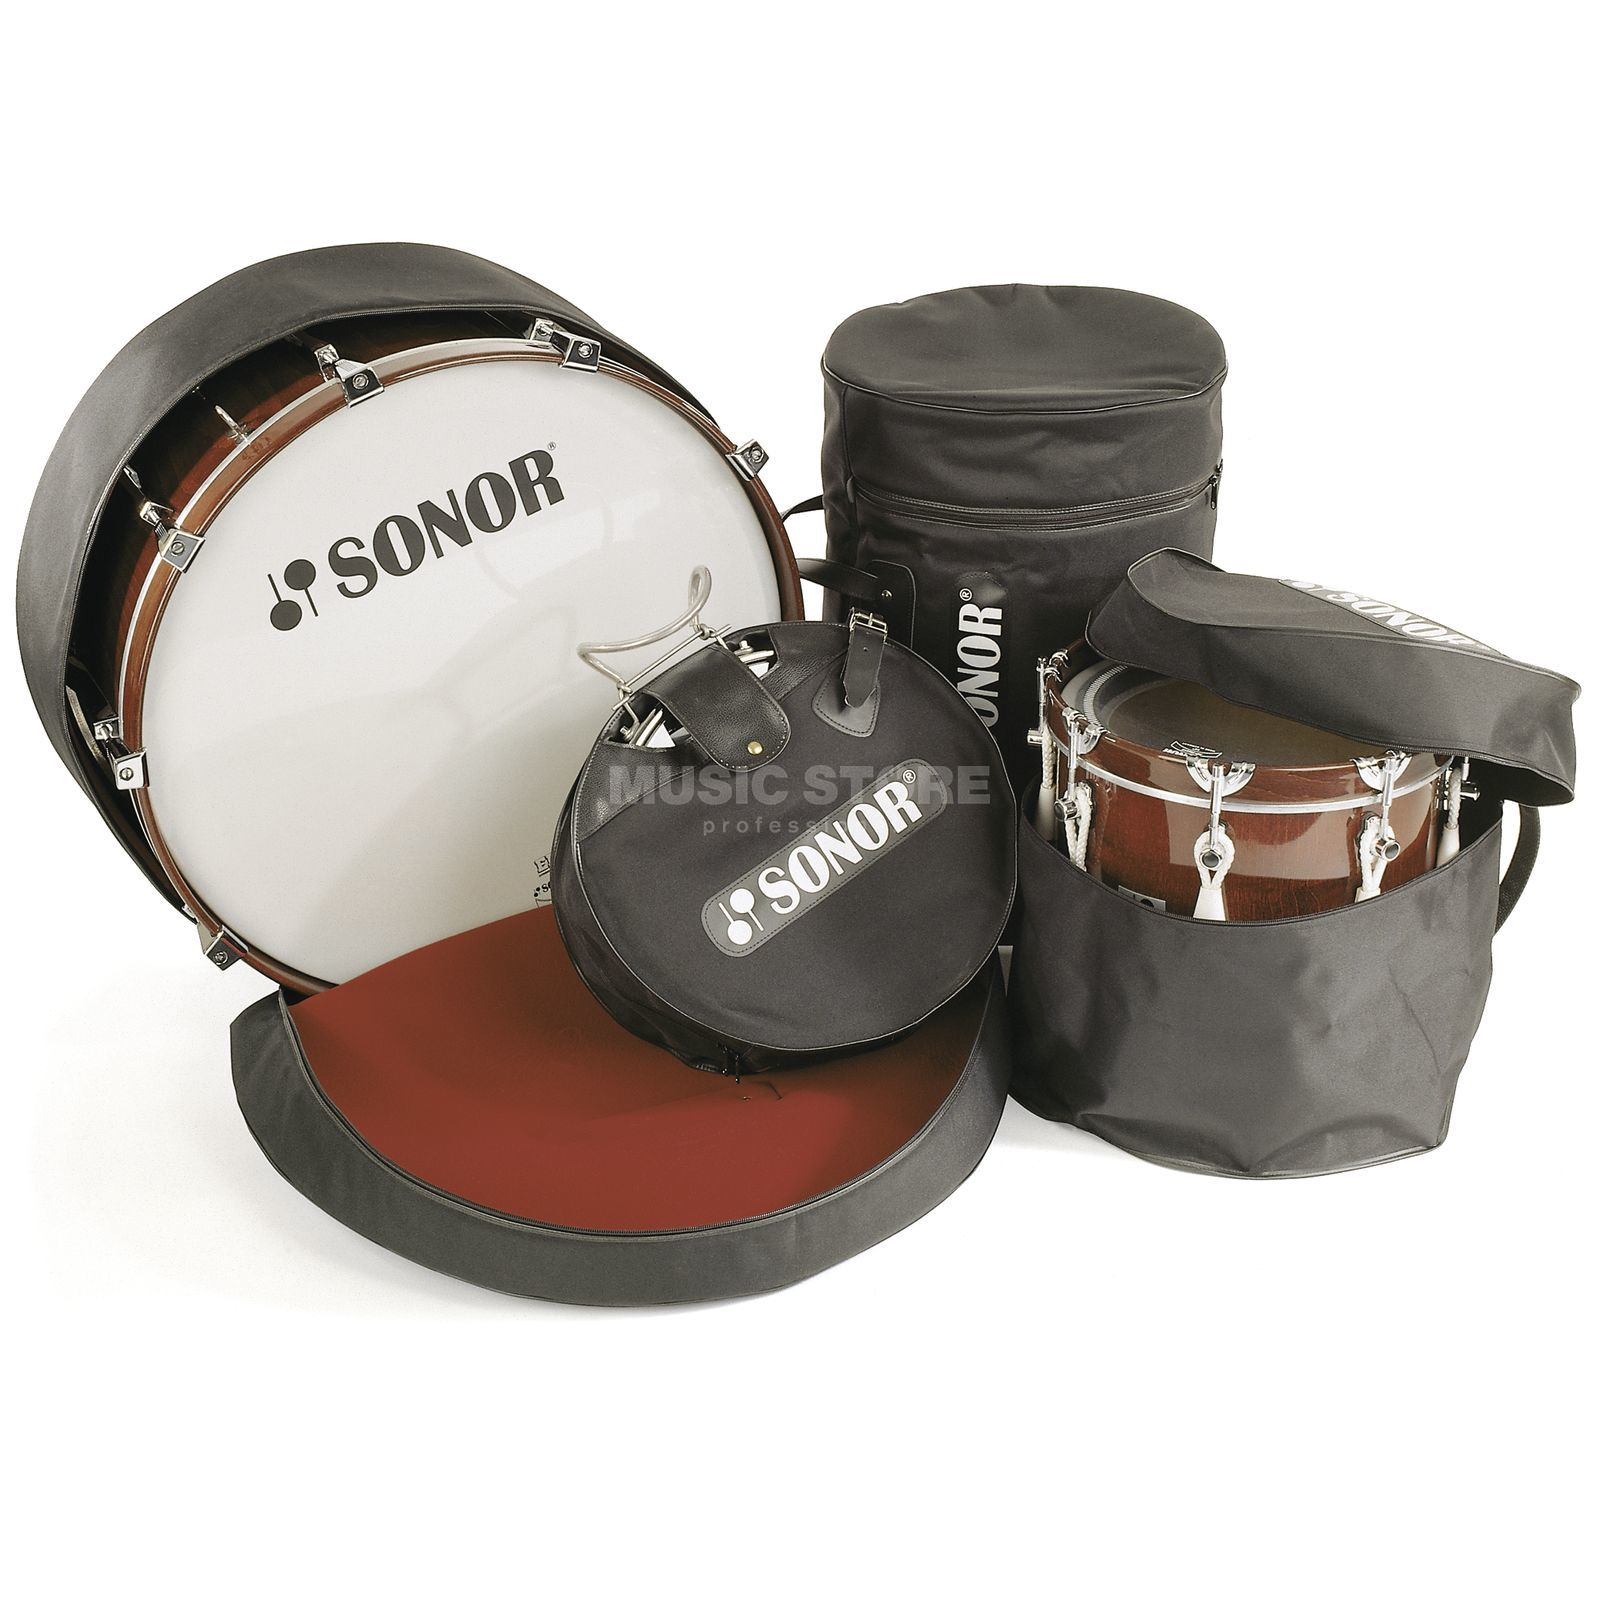 Sonor Marching Snare Bag THM 456 Produktbillede